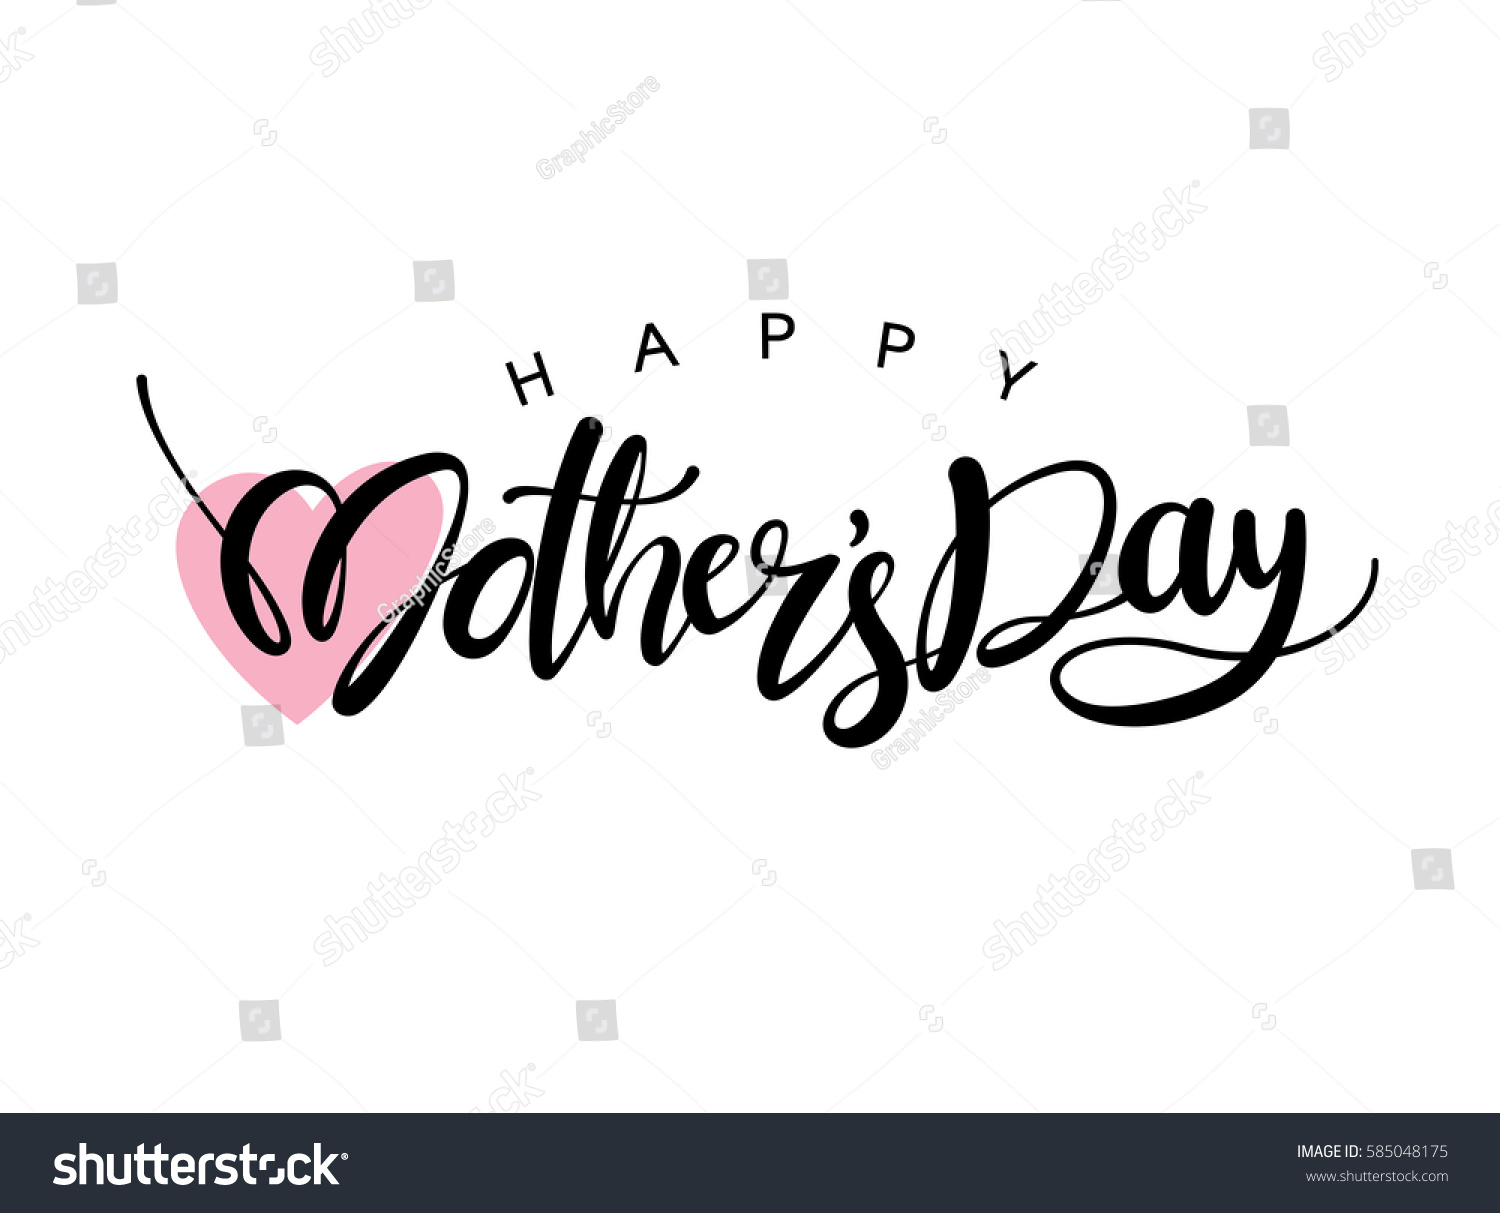 Happy Mother's Day Calligraphy Background #585048175